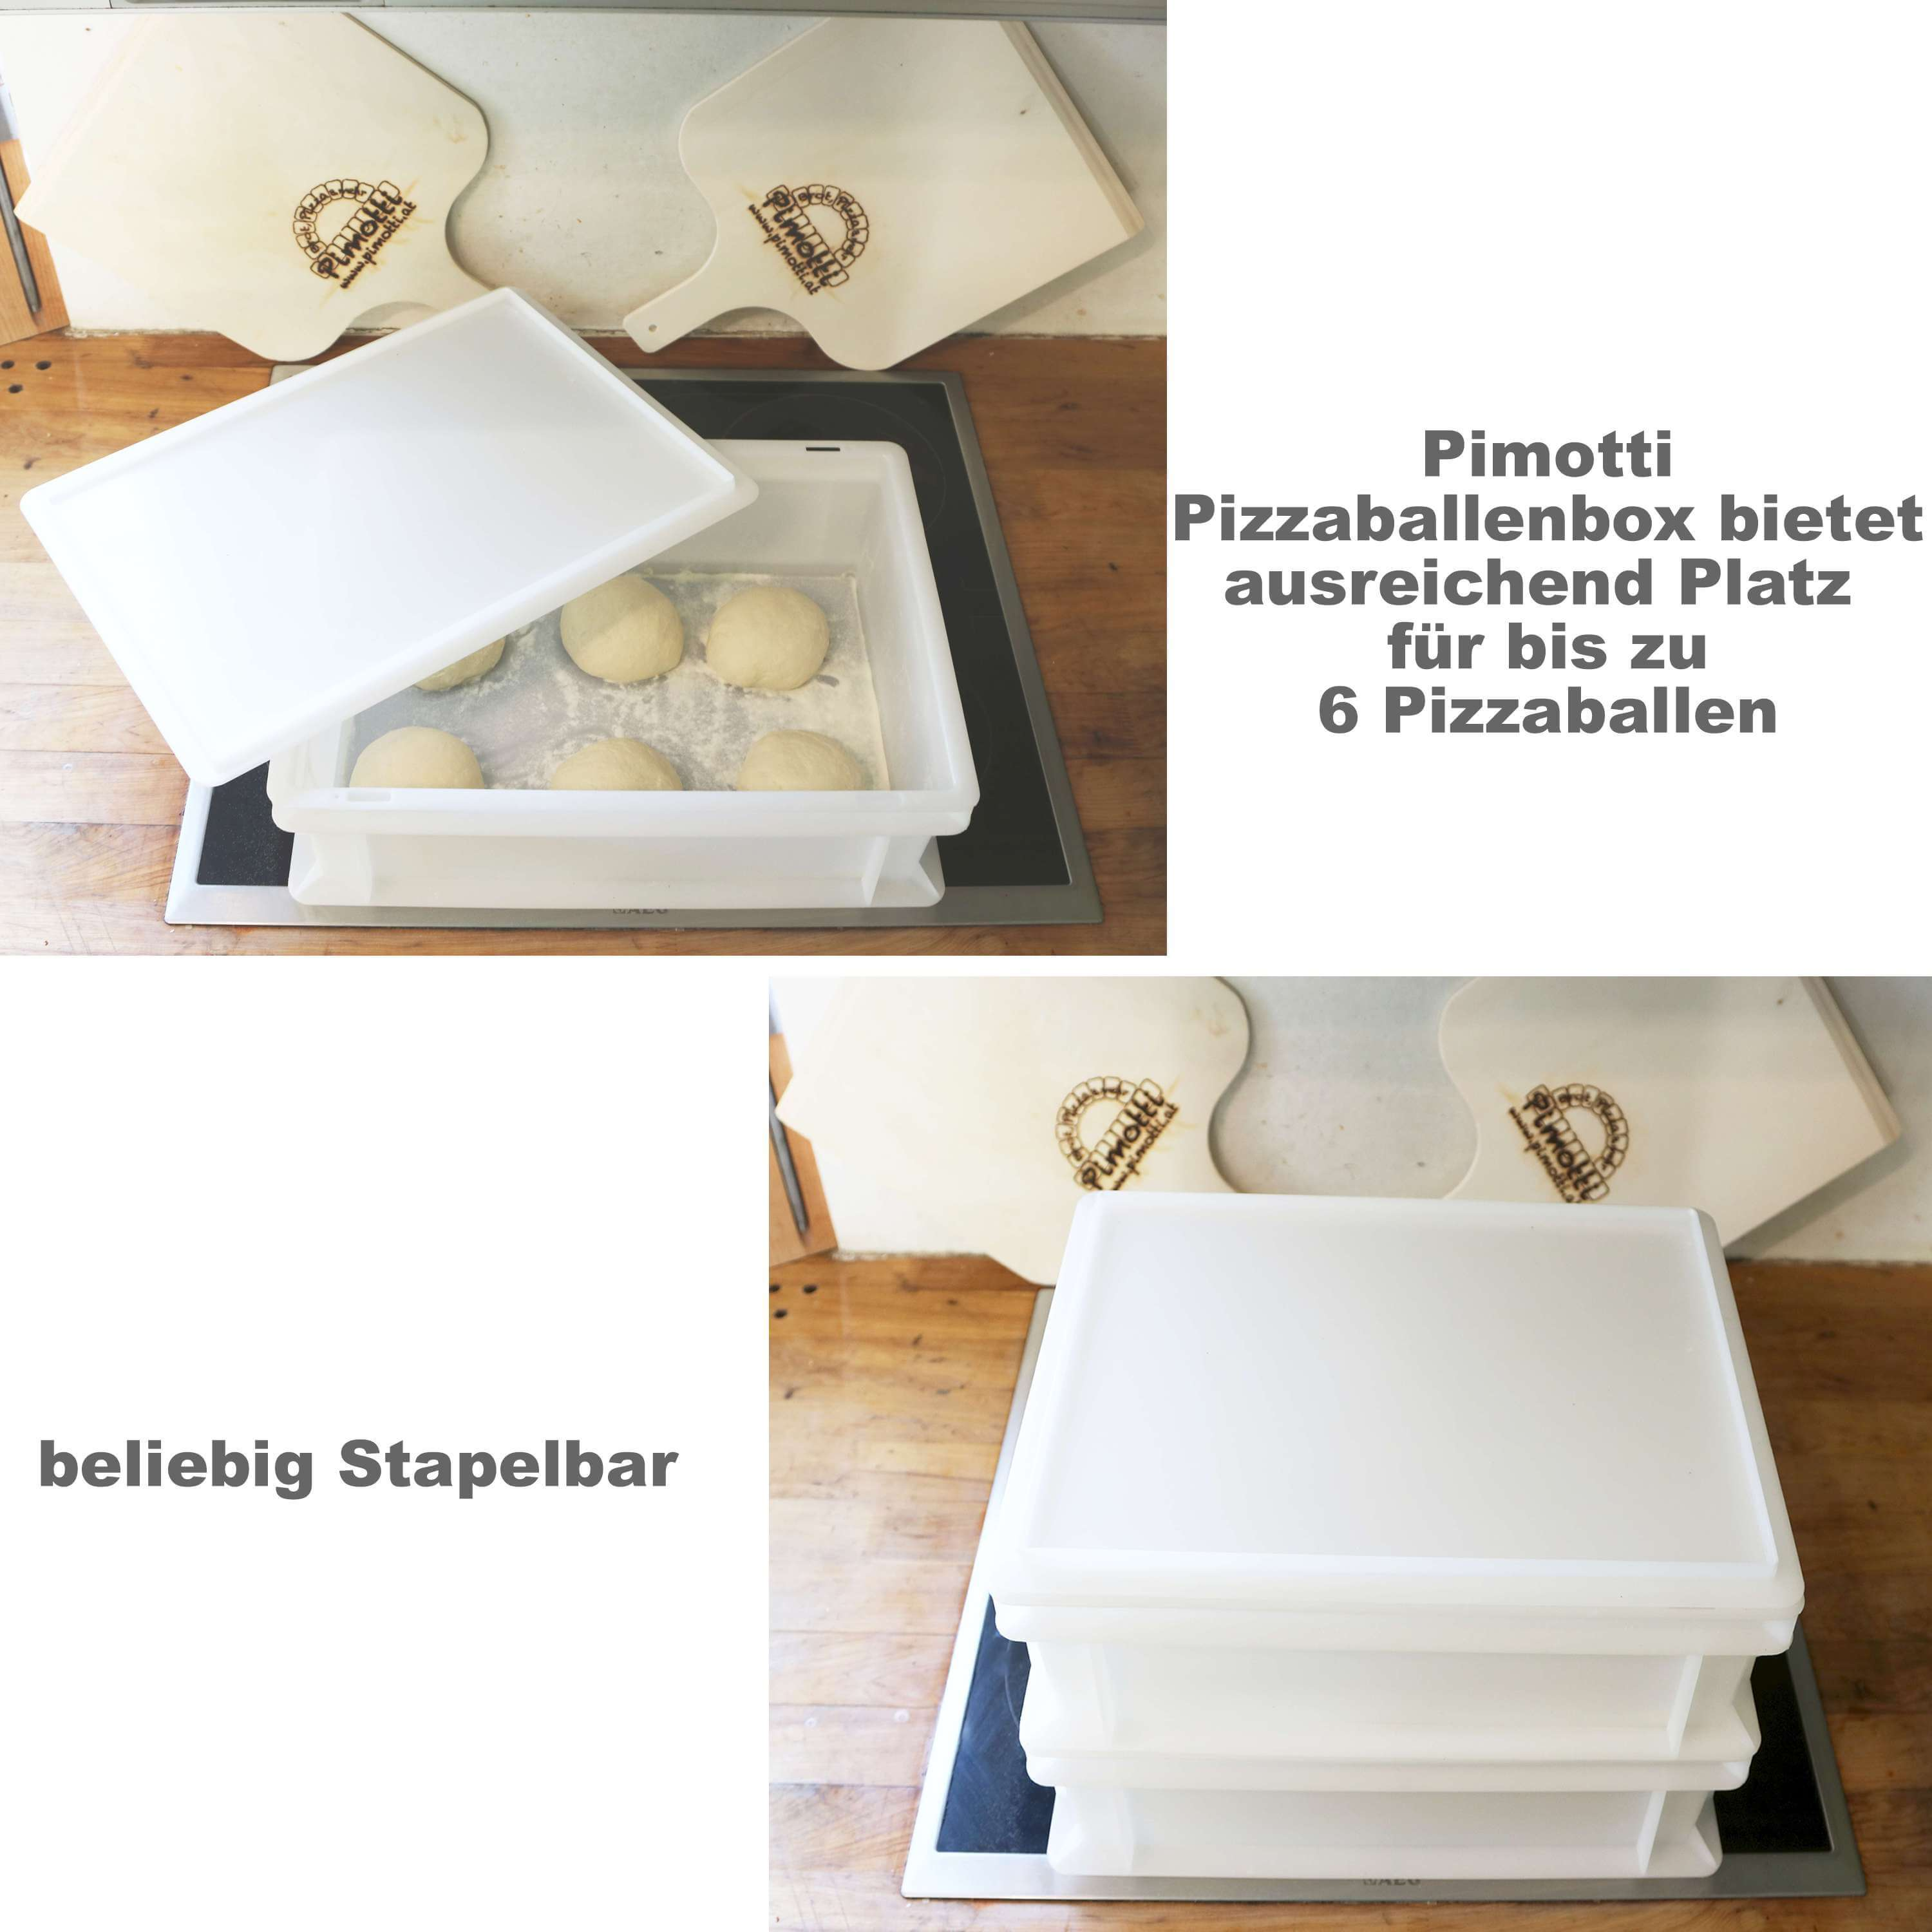 pizzaballenbox 2er set ohne deckel kunststoffbeh lter f r pizzateig pimotti pizzastein die. Black Bedroom Furniture Sets. Home Design Ideas